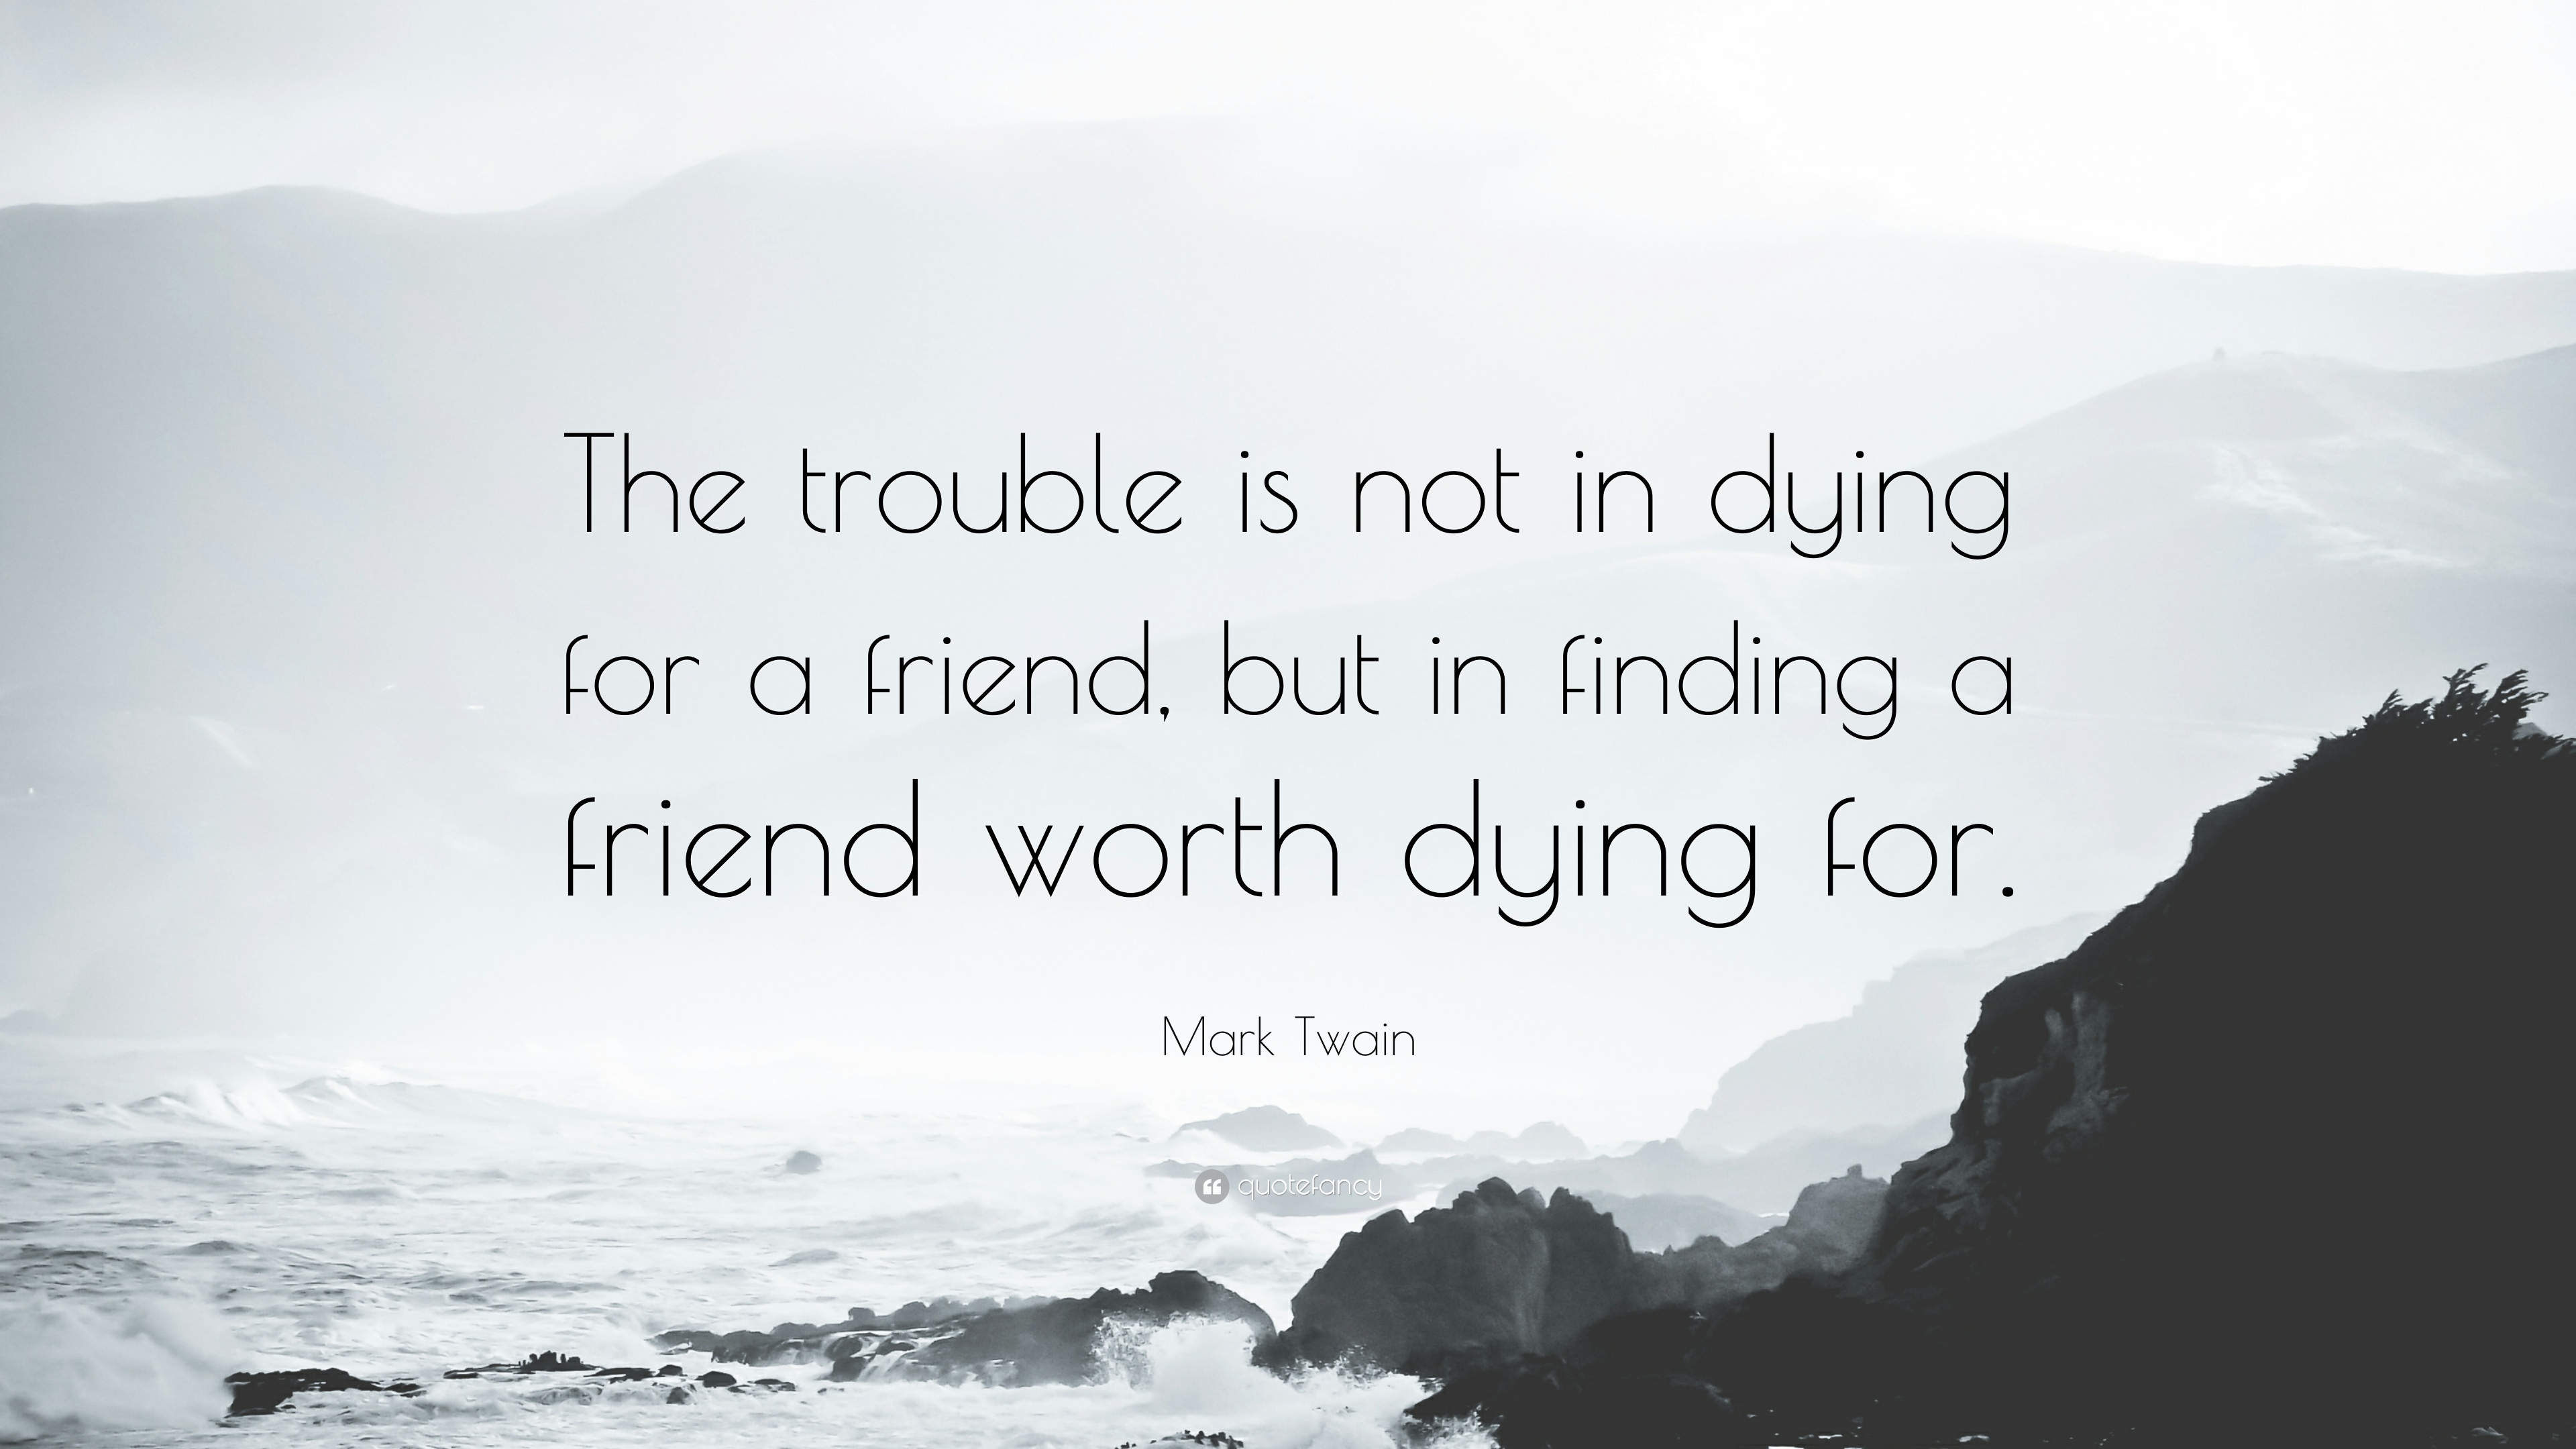 Quotes About Friendship Images Friendship Quotes 21 Wallpapers  Quotefancy